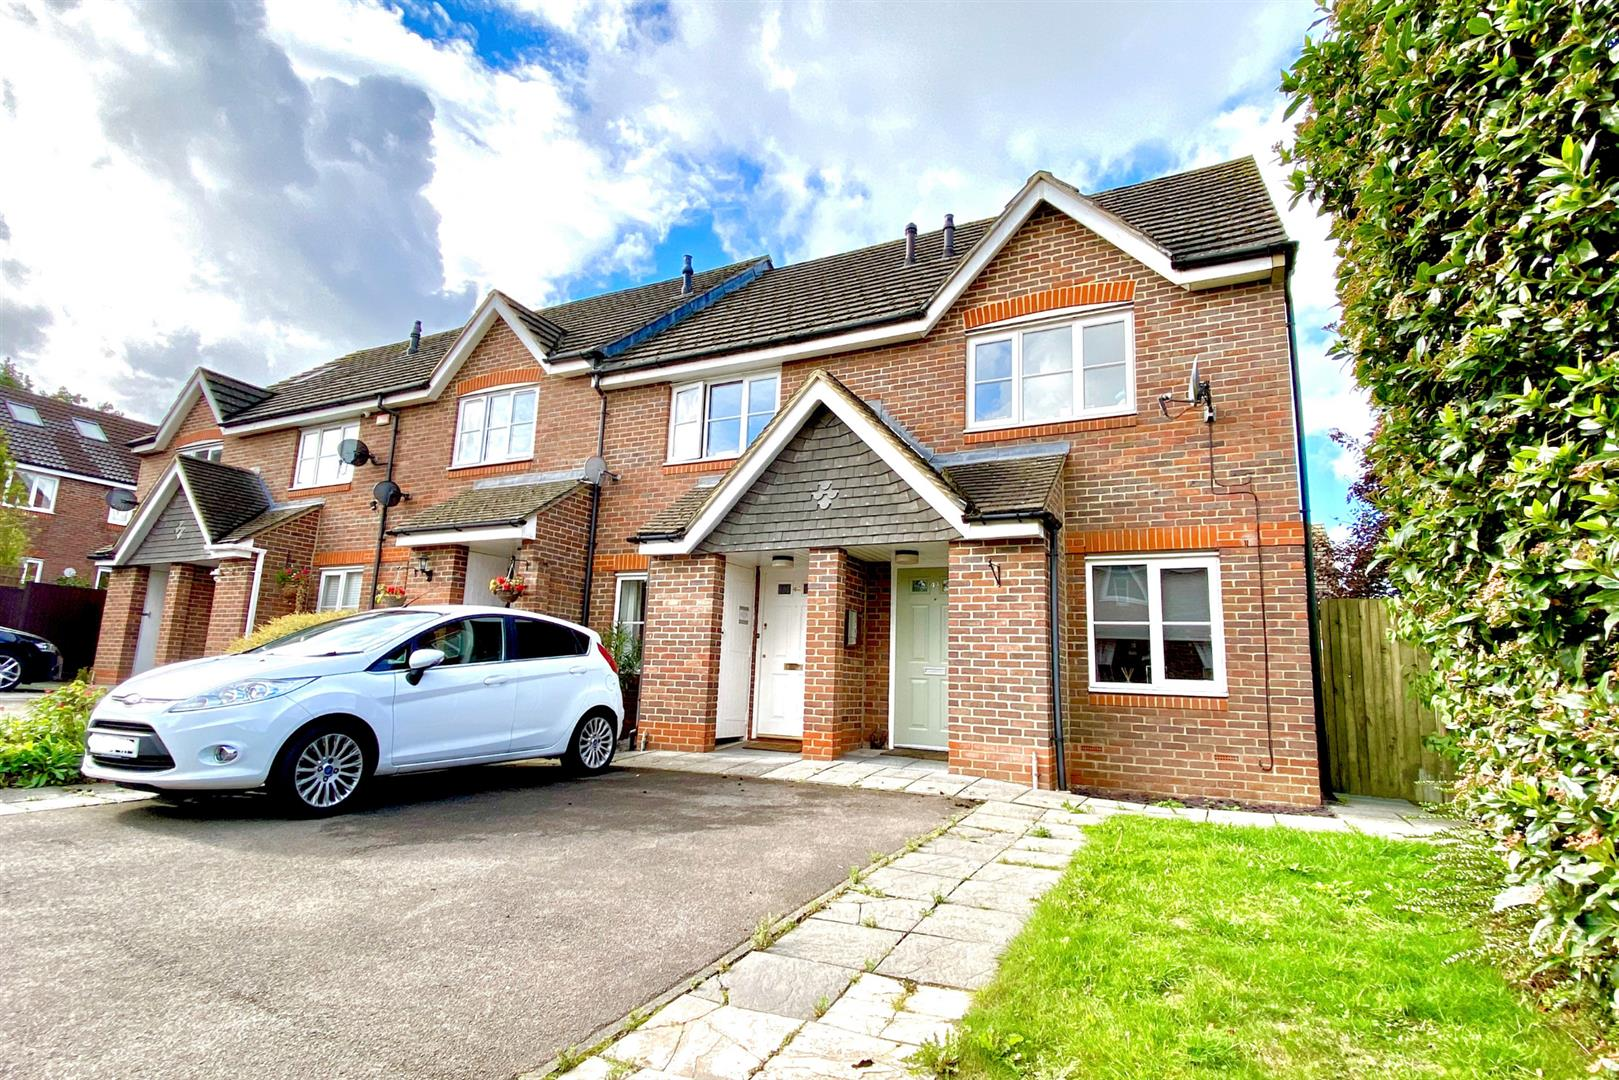 2 bed end of terrace for sale in Three Mile Cross, RG7